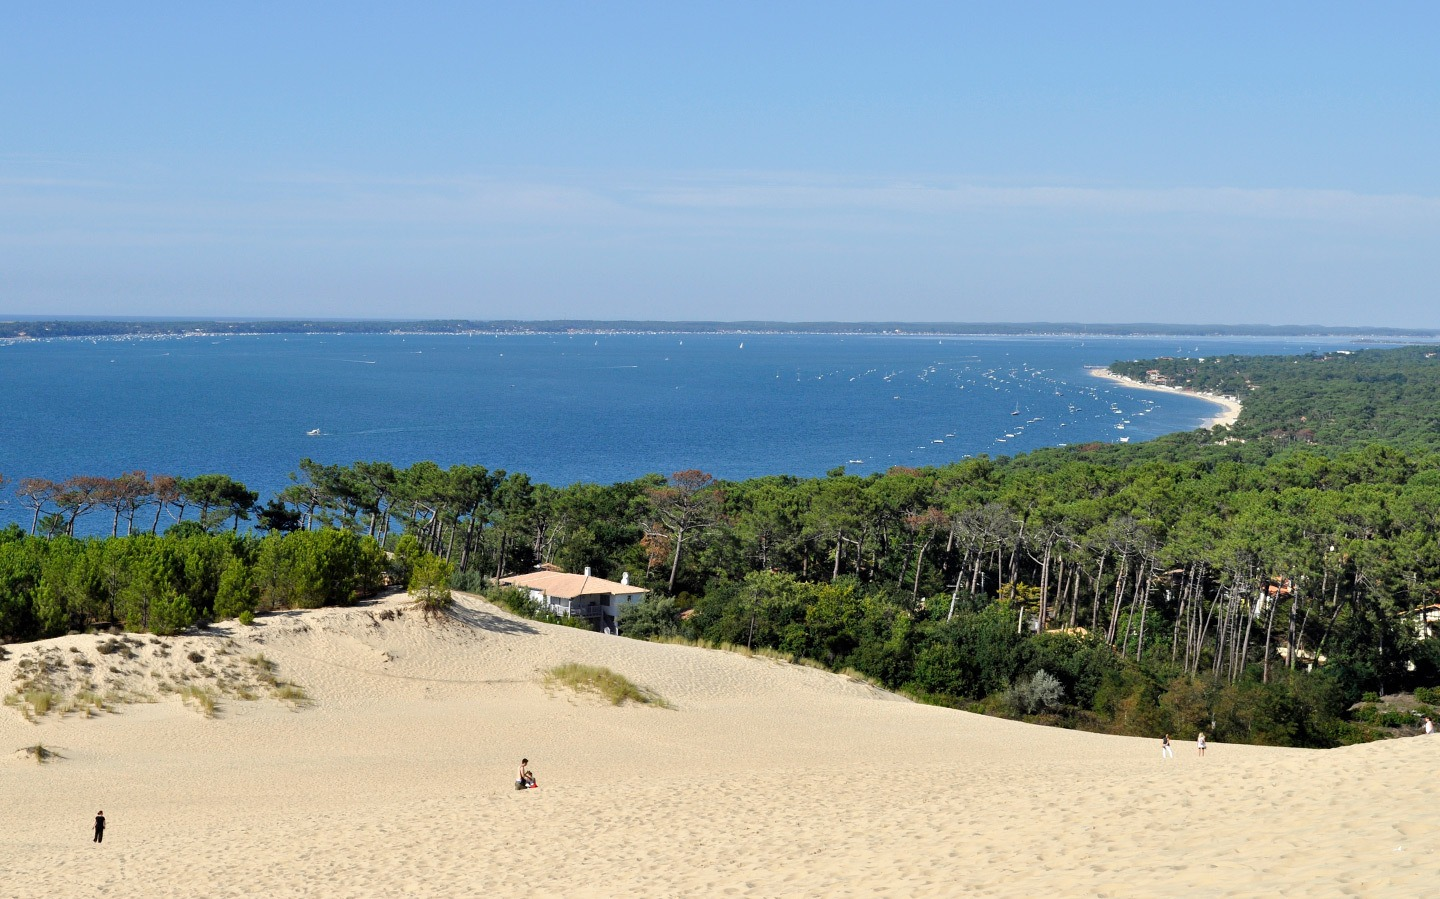 The Dune du Pyla, southwest France